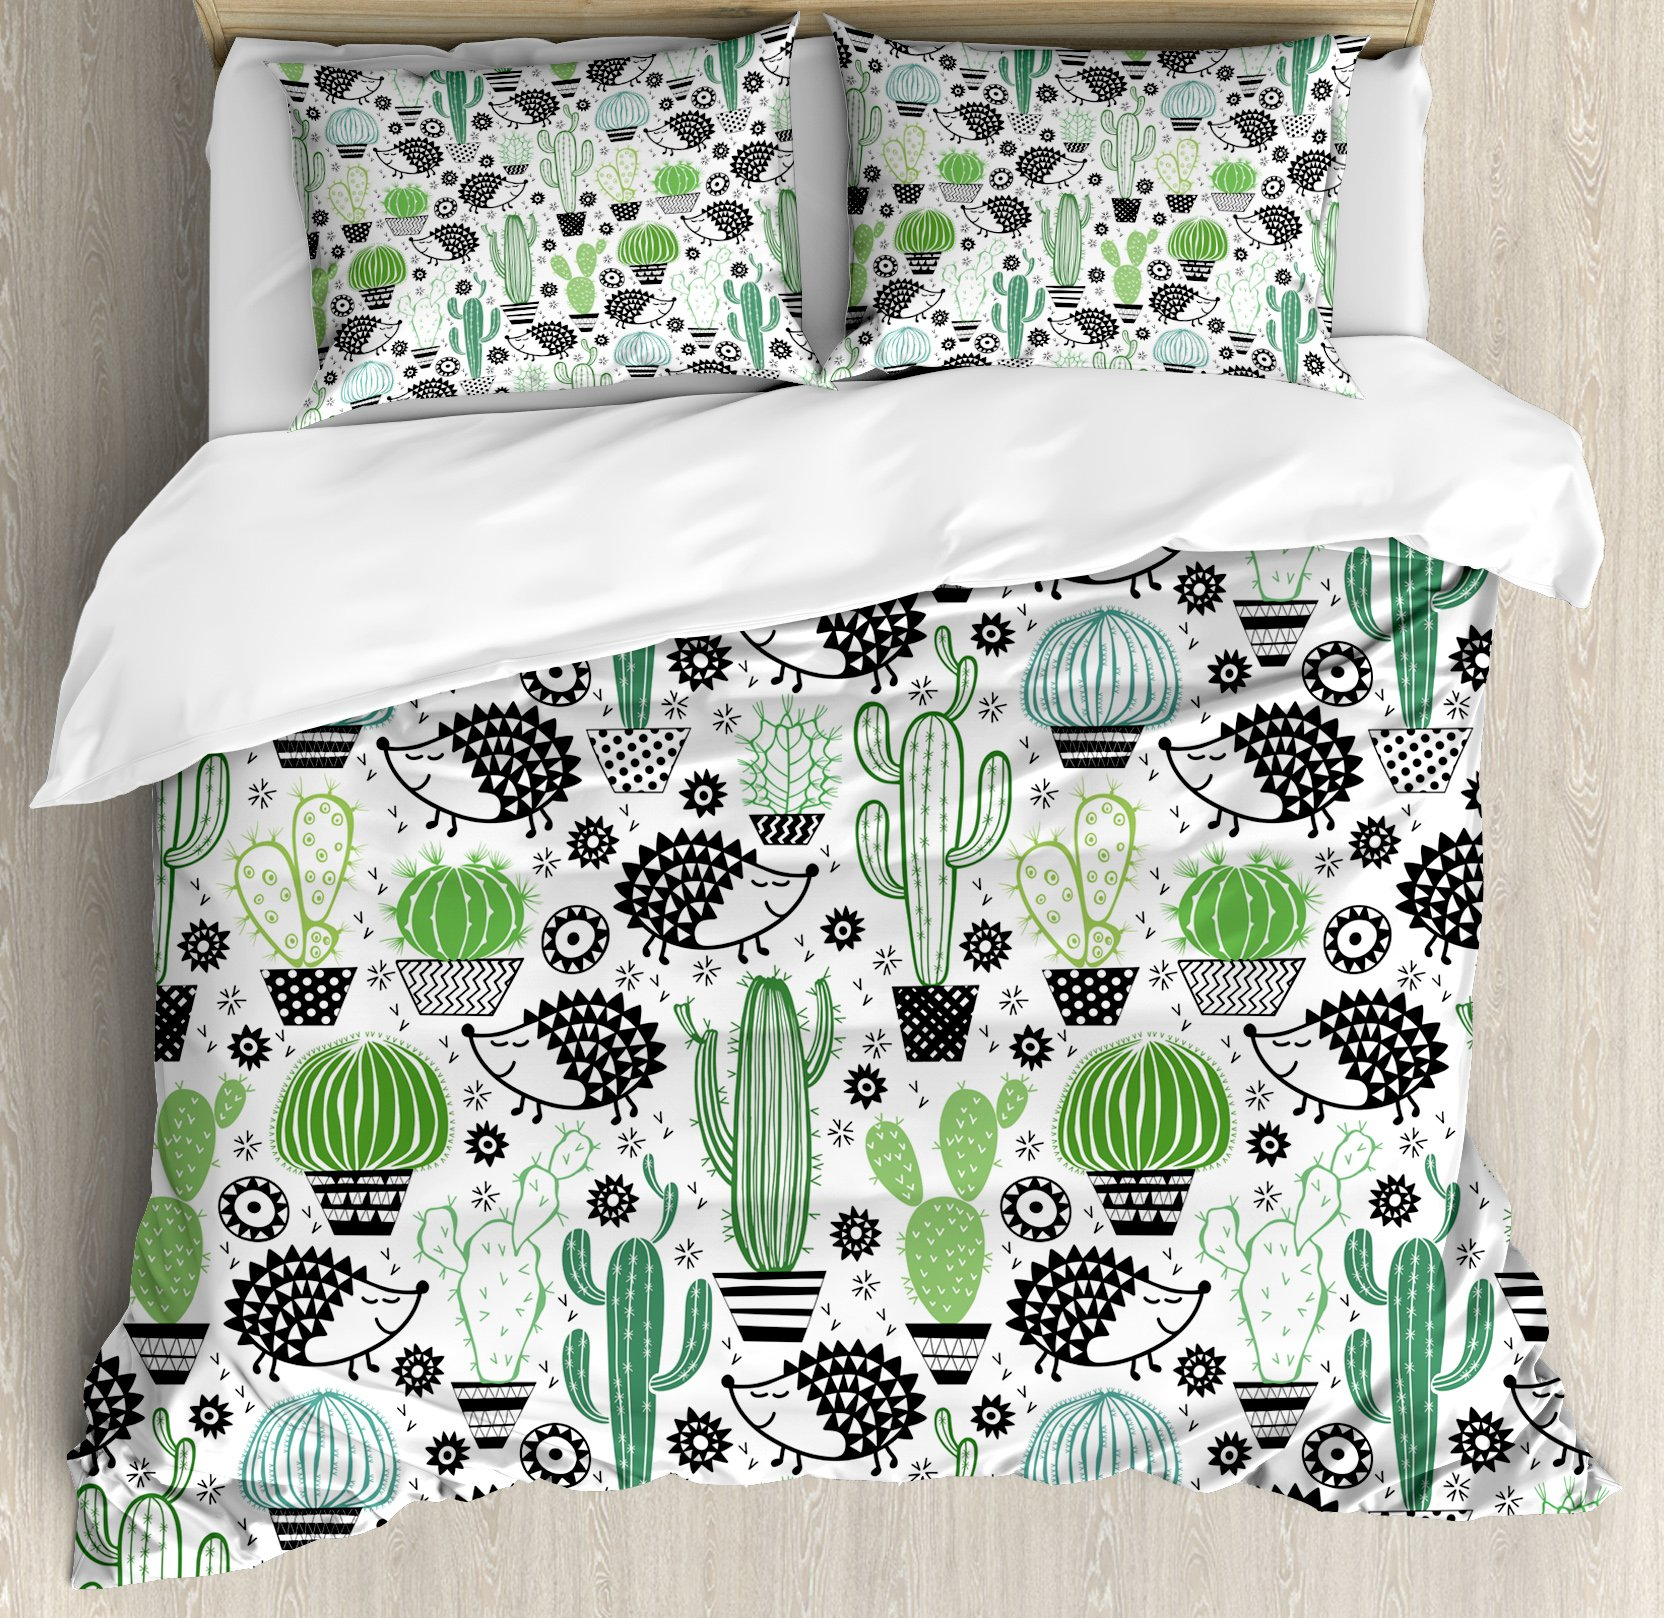 Ambesonne Cactus Decor Duvet Cover Set King Size, Cartoon Inspired Drawing of Cute Hedgehog Animals Saguaro and Prickly Pear, Decorative 3 Piece Bedding Set with 2 Pillow Shams, Multicolor